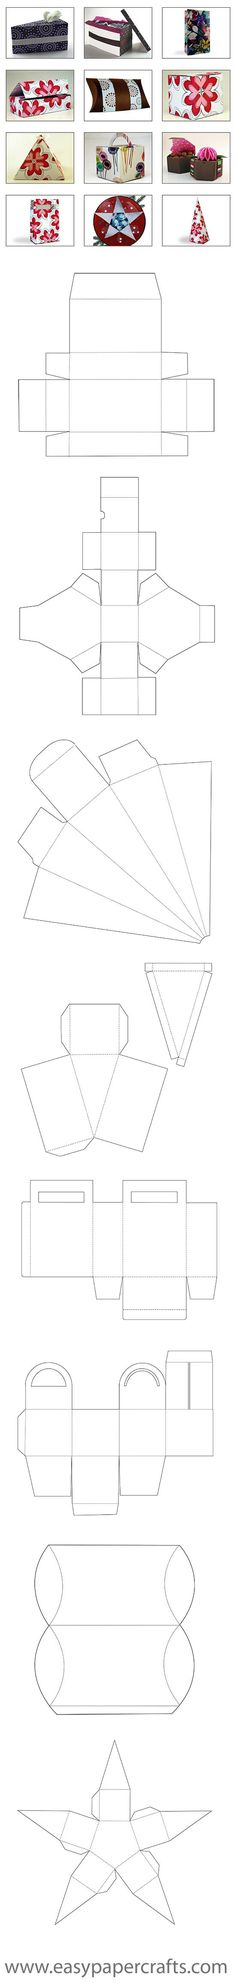 free Box Templates - from Rita at '{easy} Paper Crafts' http://www.easypapercrafts.com/index.php/free-templates-slide-show.html: